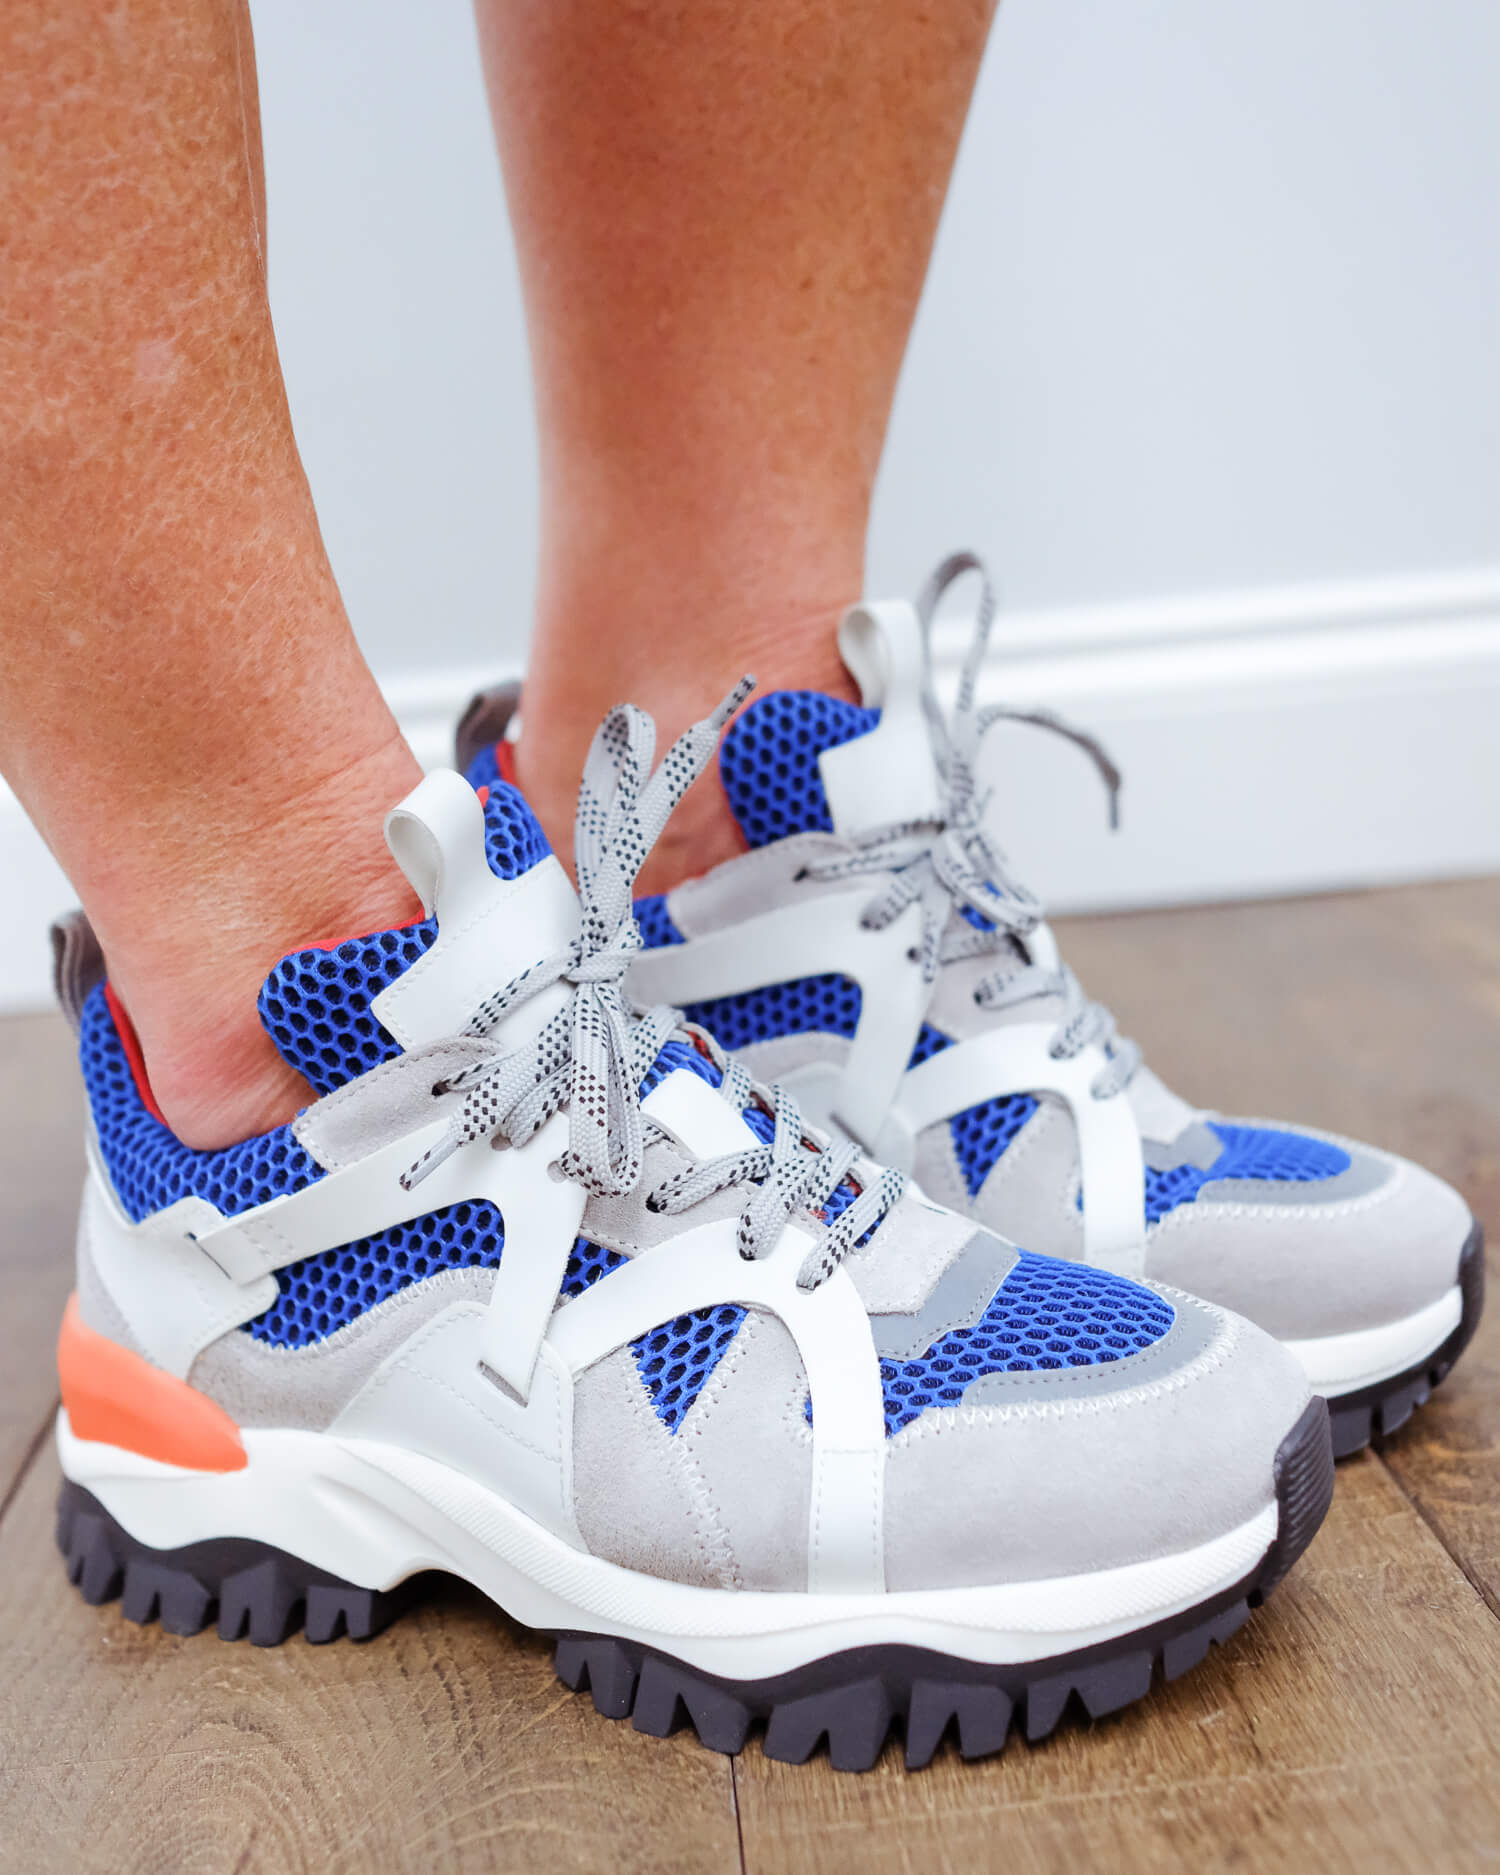 SLF Amy trail trainer in baleine blue